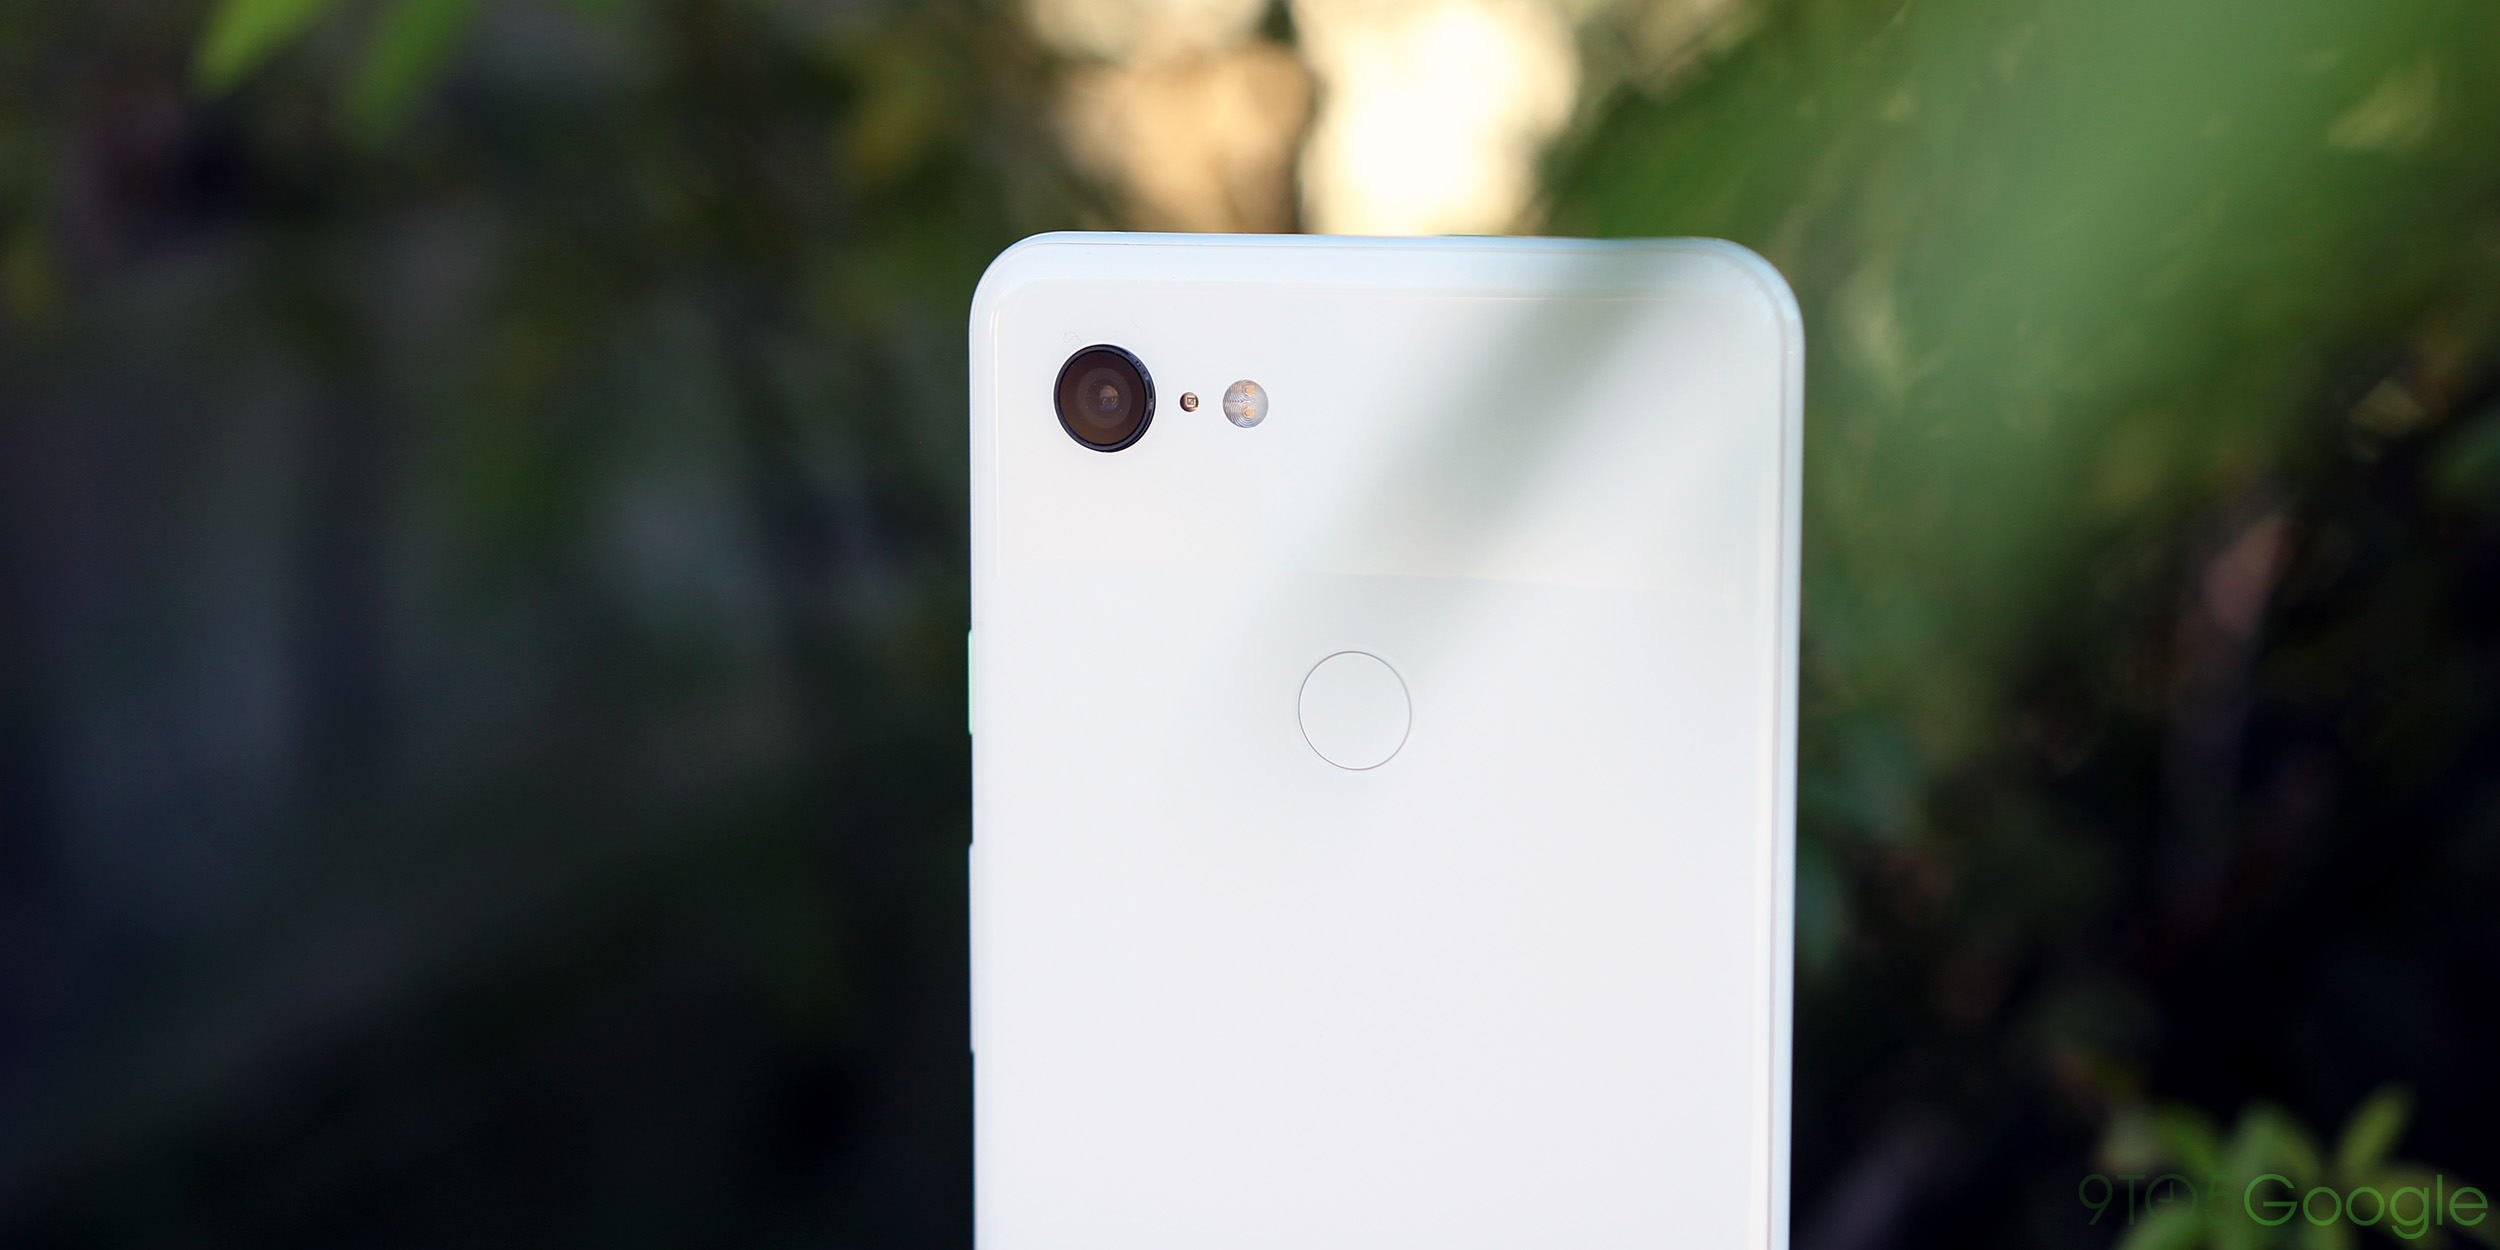 google pixel 3 has poor audio recording but its flawed tuning is fixable via software update